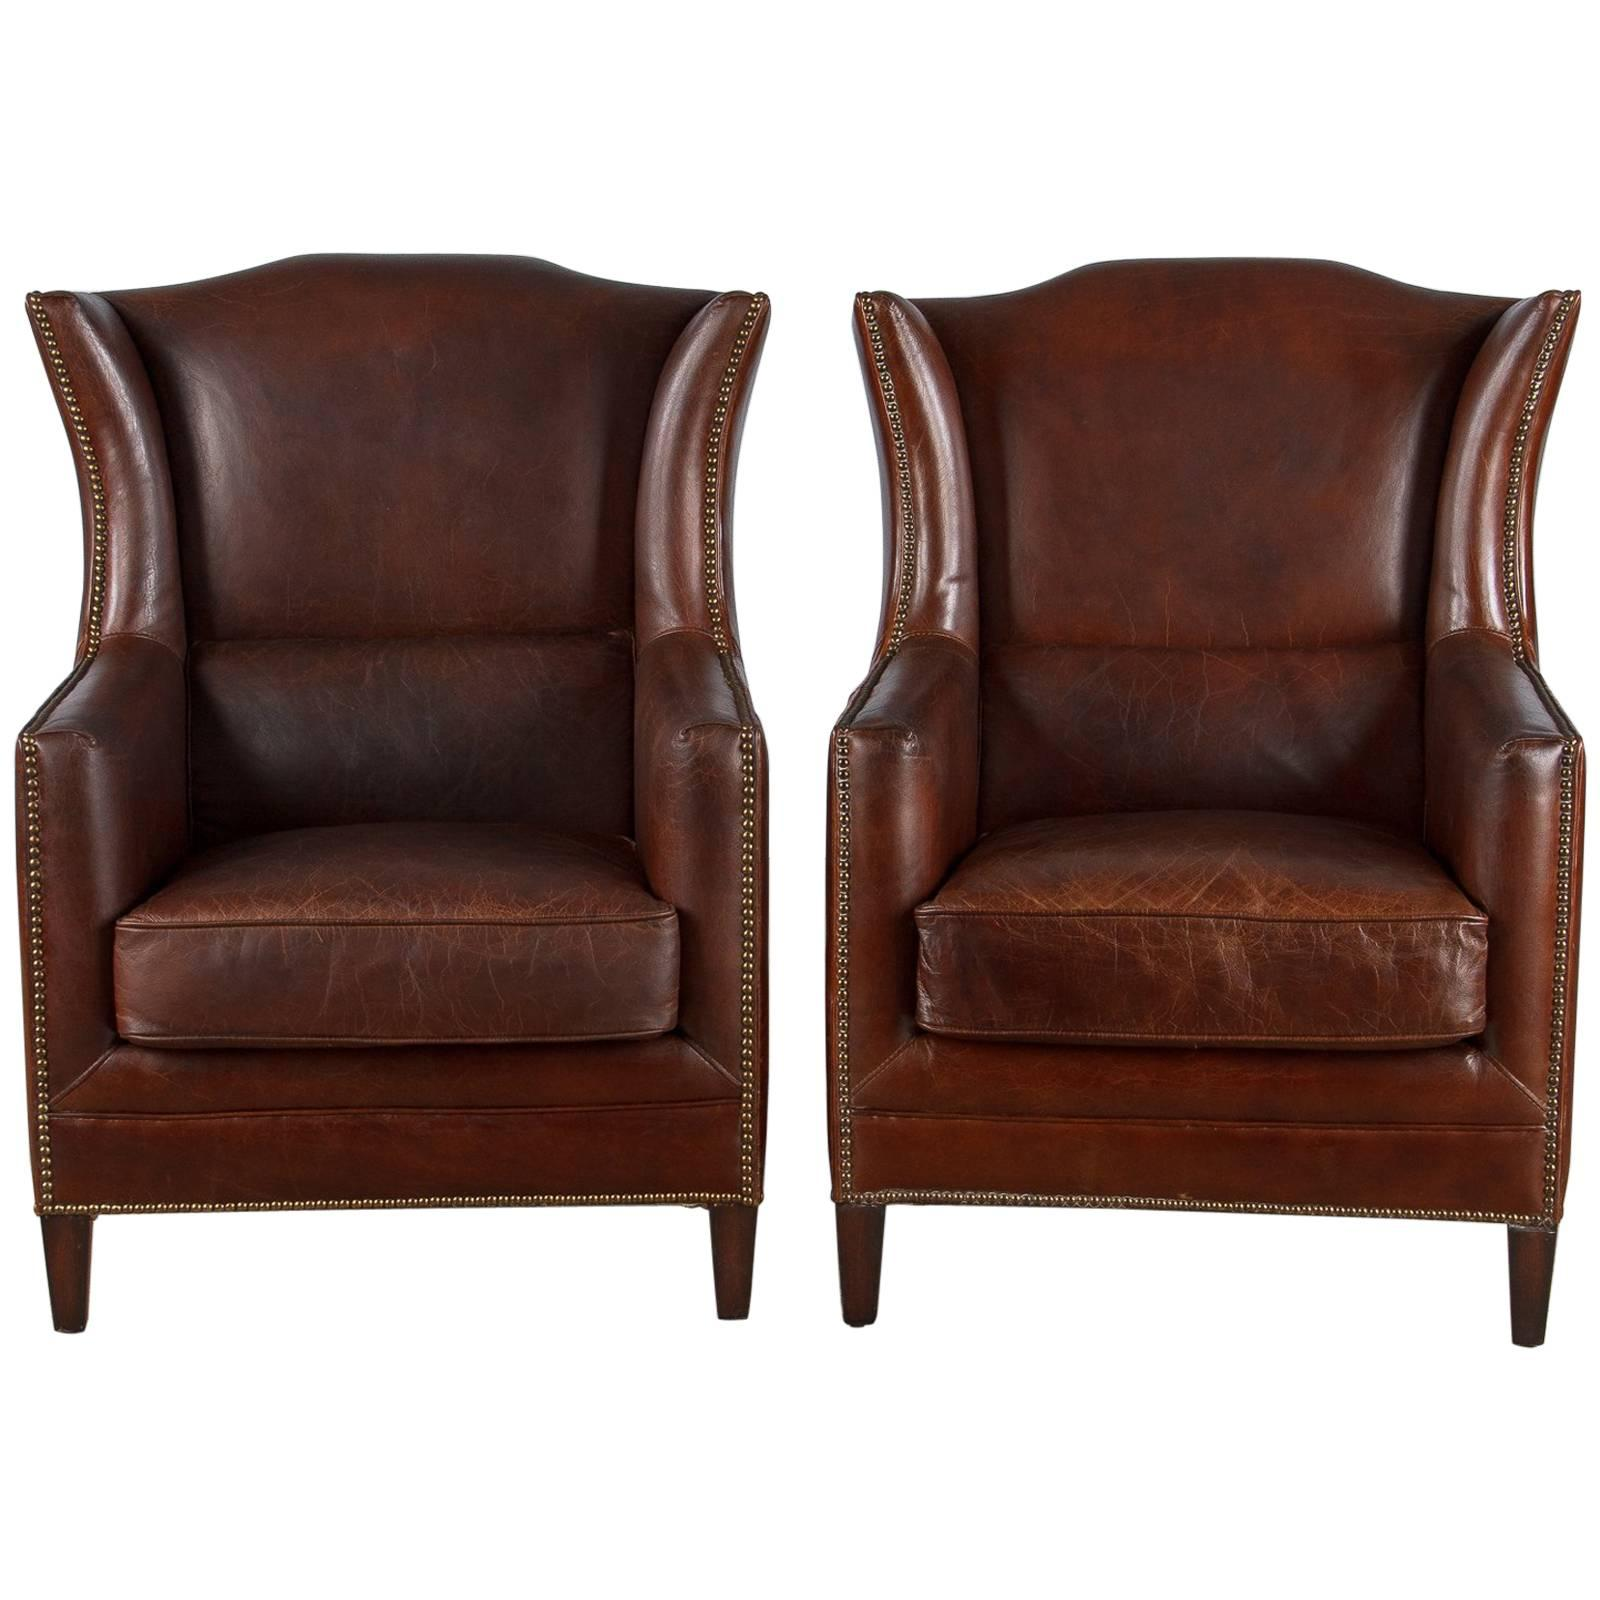 small leather club chairs hanging clear plastic 26 for sale on 1stdibs pair of french wingback armchairs 1980s